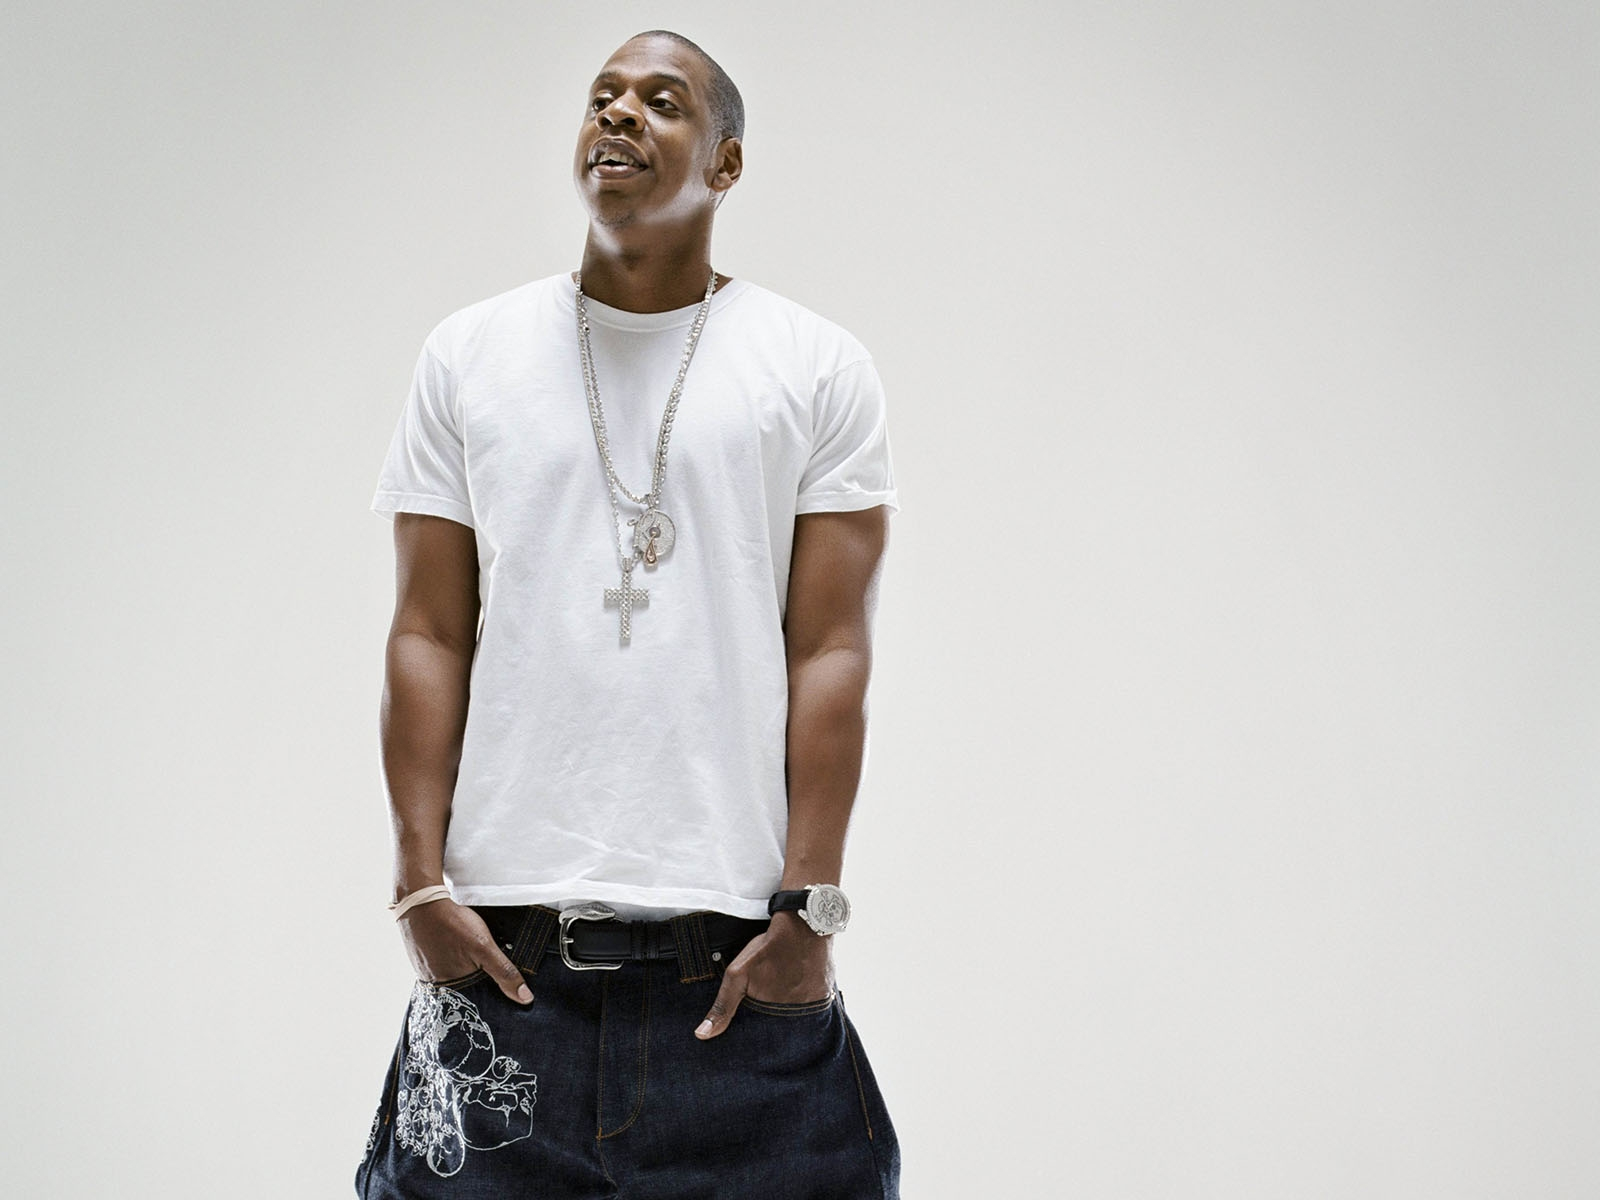 jay-z_rapper_pants_with_smile_wallpaper